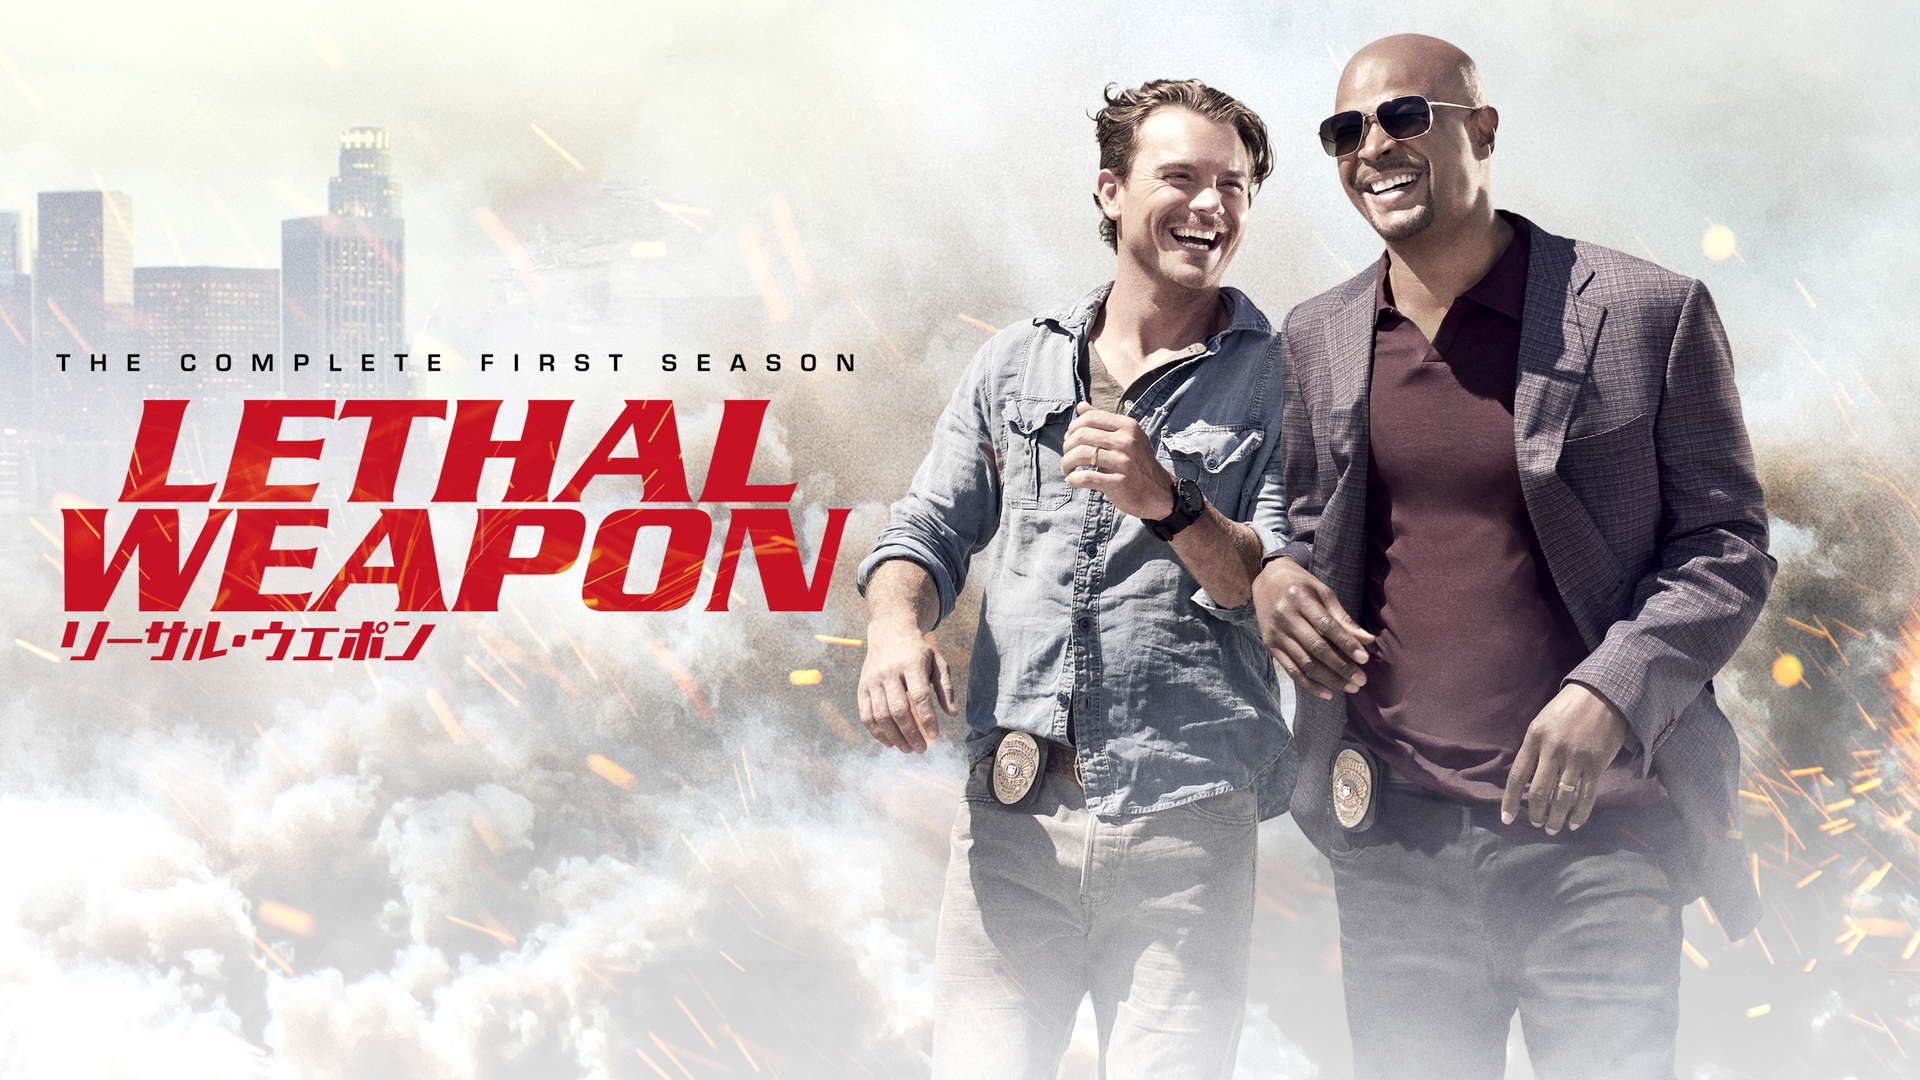 /special/lethalweapon/